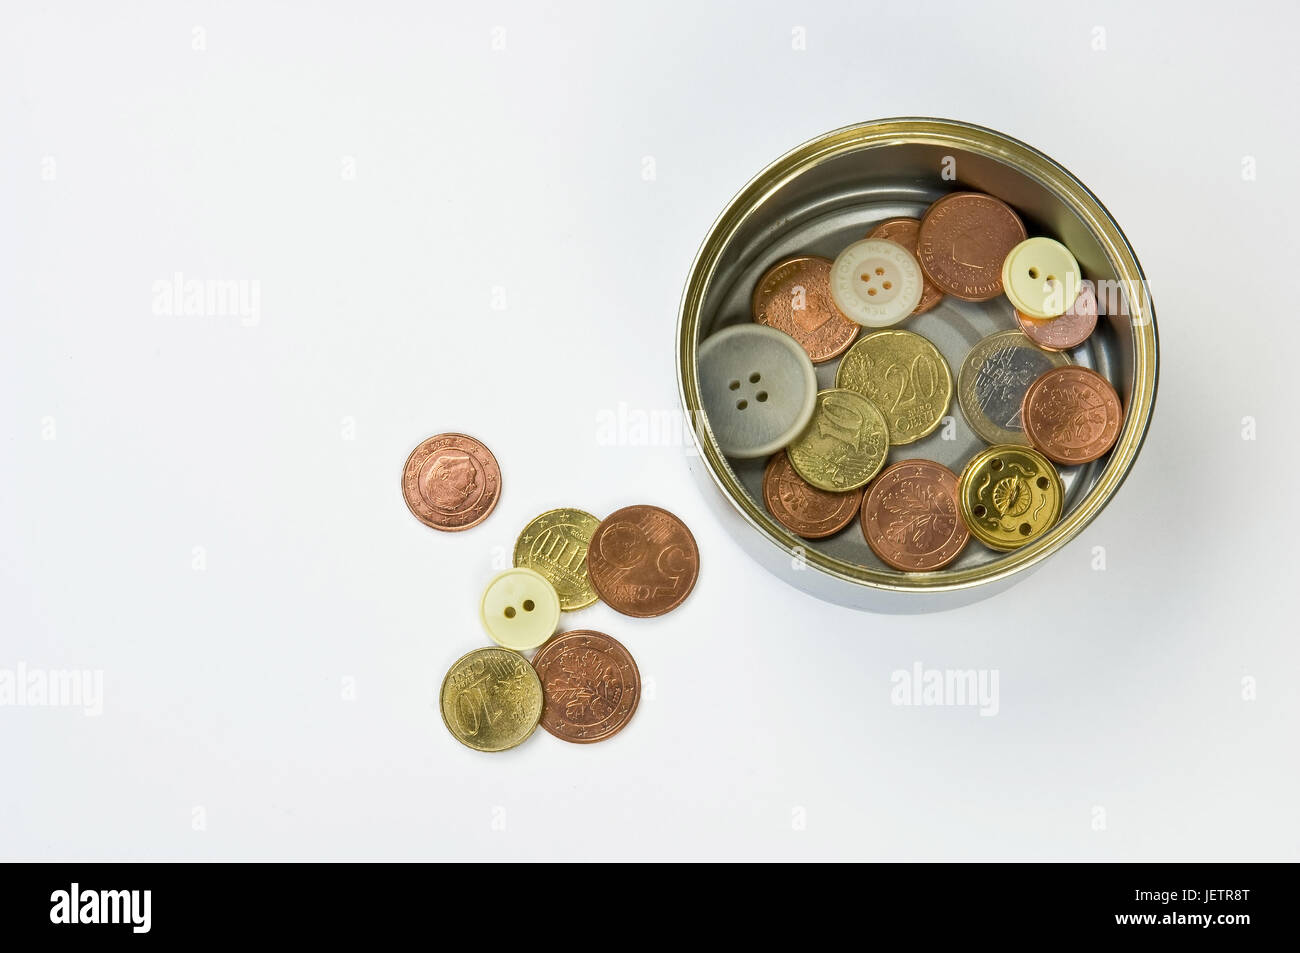 Canned food tin with coins and buttons, some are quite wrong, Konservendose mit Muenzen und Knoepfen, einige liegen - Stock Image